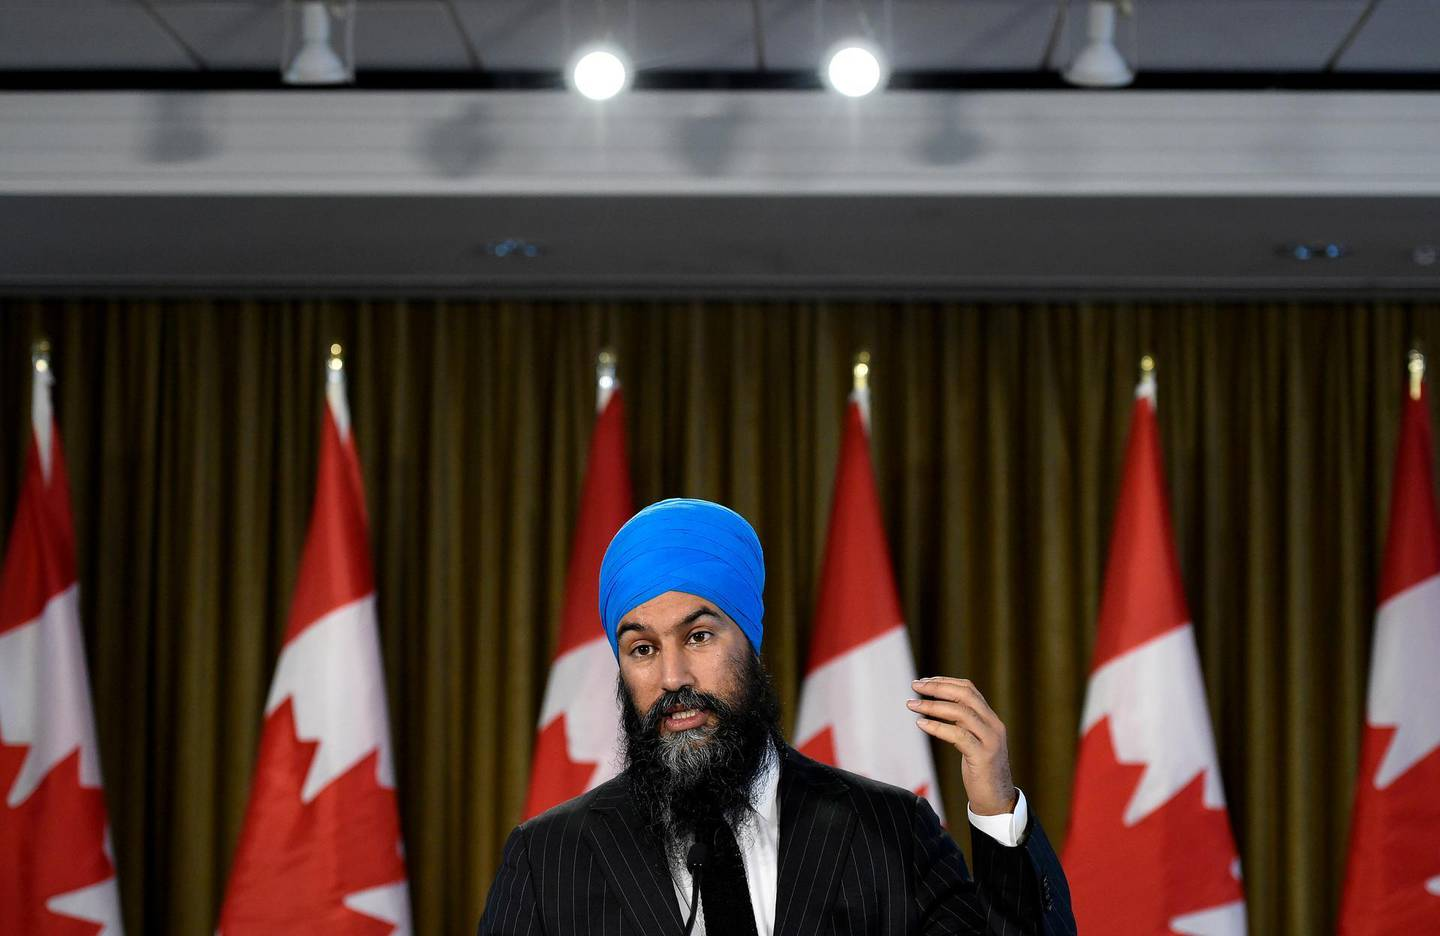 NDP Leader Jagmeet Singh speaks with reporters following the results of the 2019 federal election in Burnaby, British Columbia, Tuesday, Oct. 22, 2019. (Nathan Denette/The Canadian Press via AP)